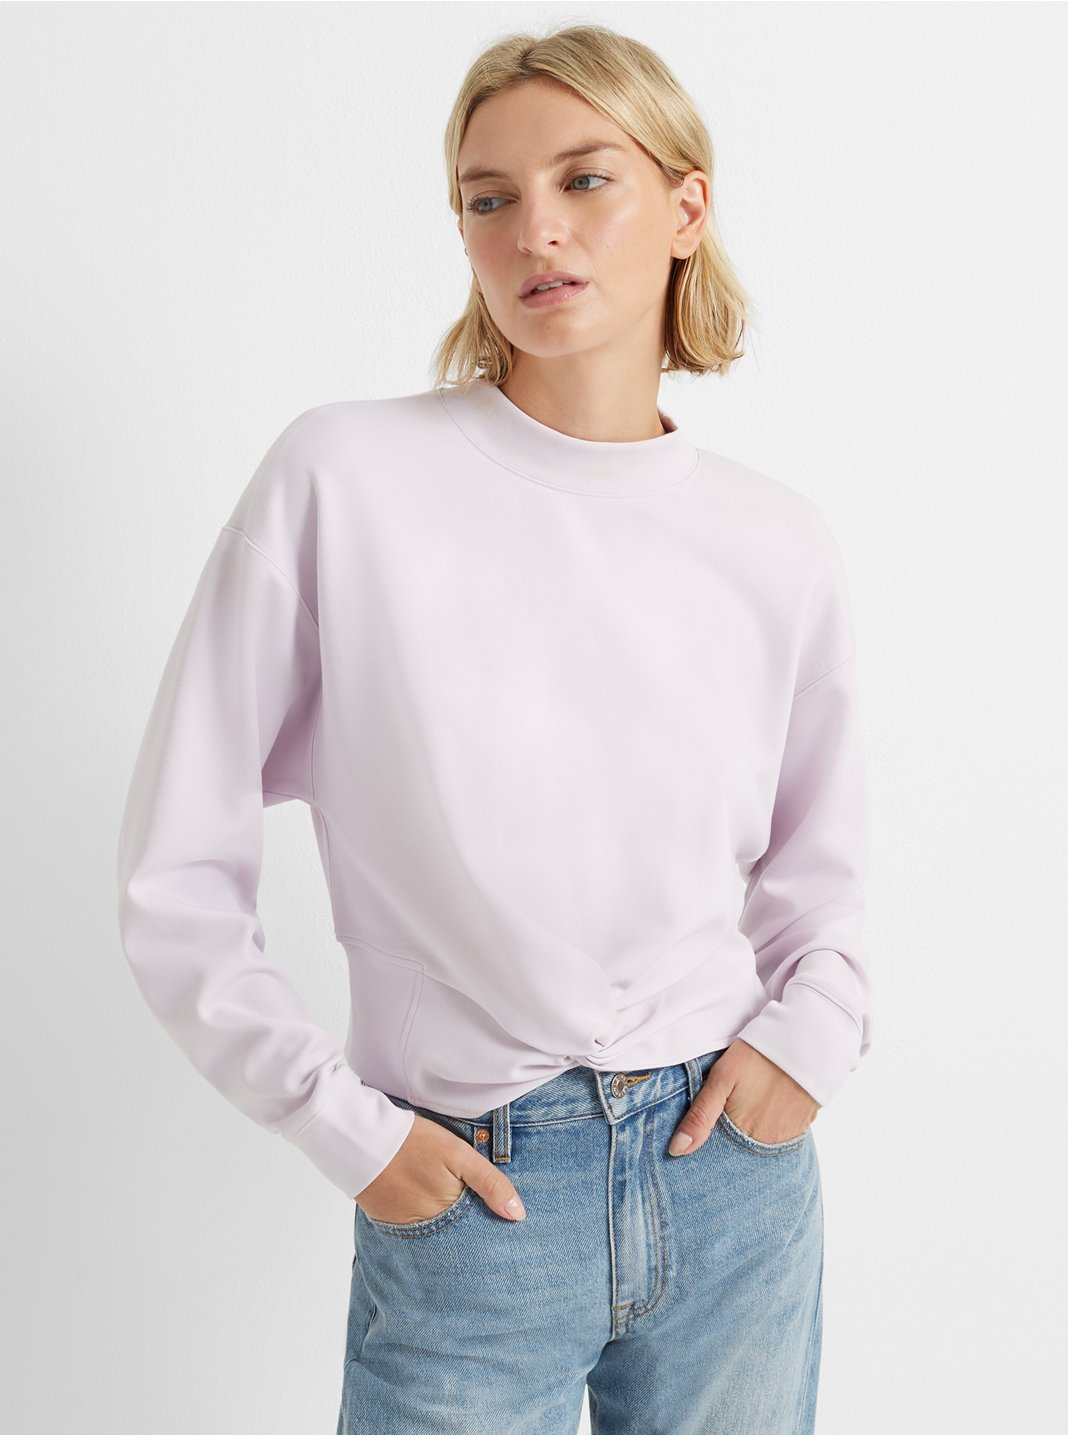 Knottie Sweatshirt